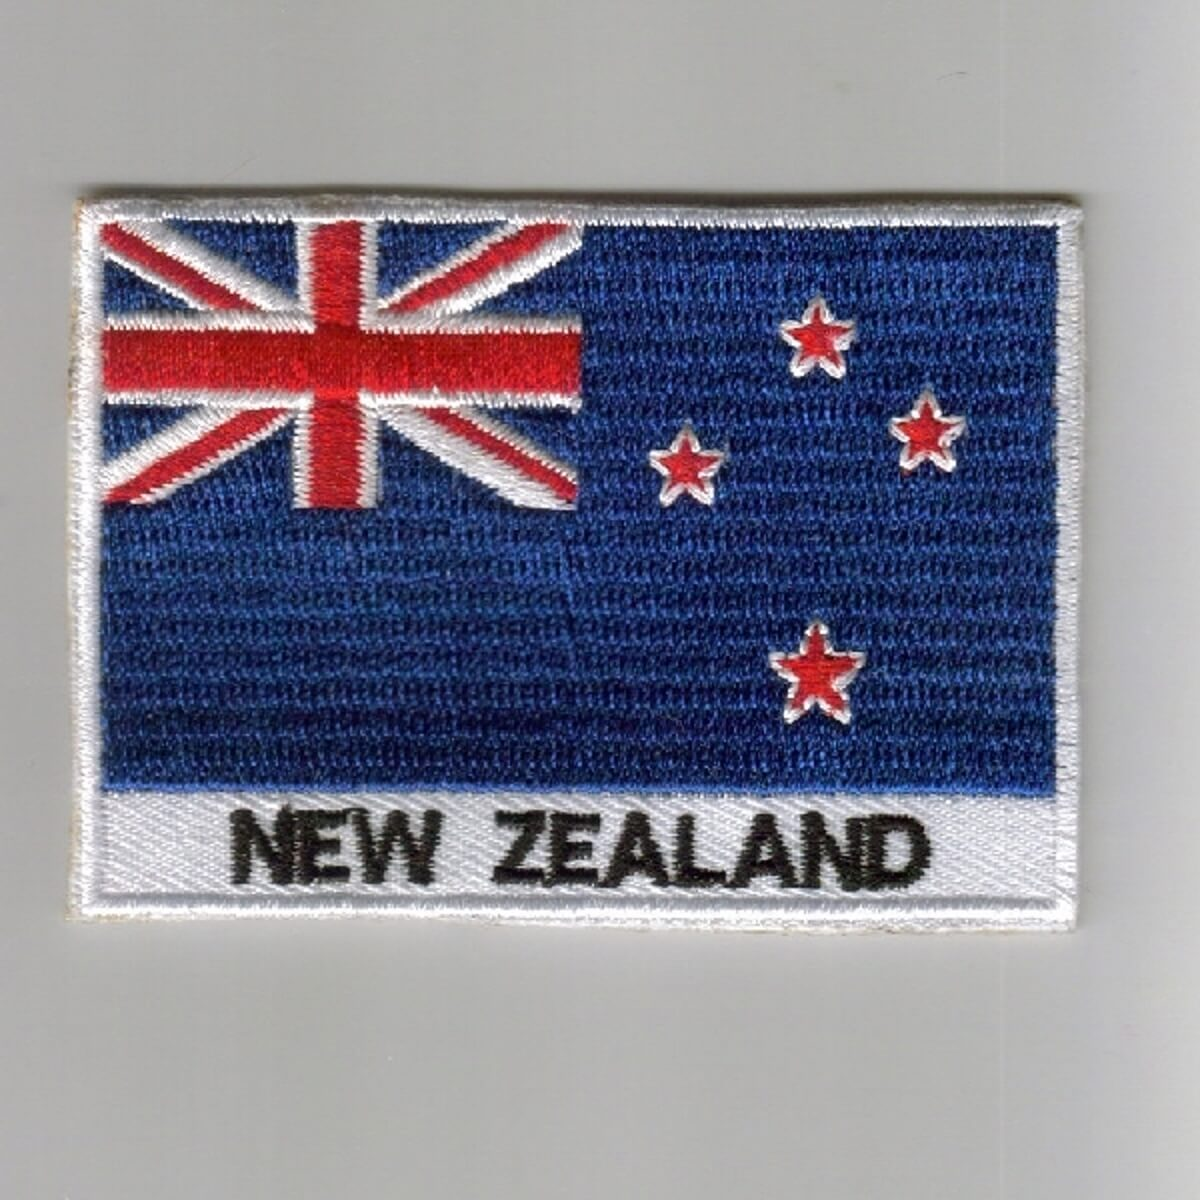 NewZealand Embroidered Patches  Country Flag NewZealand